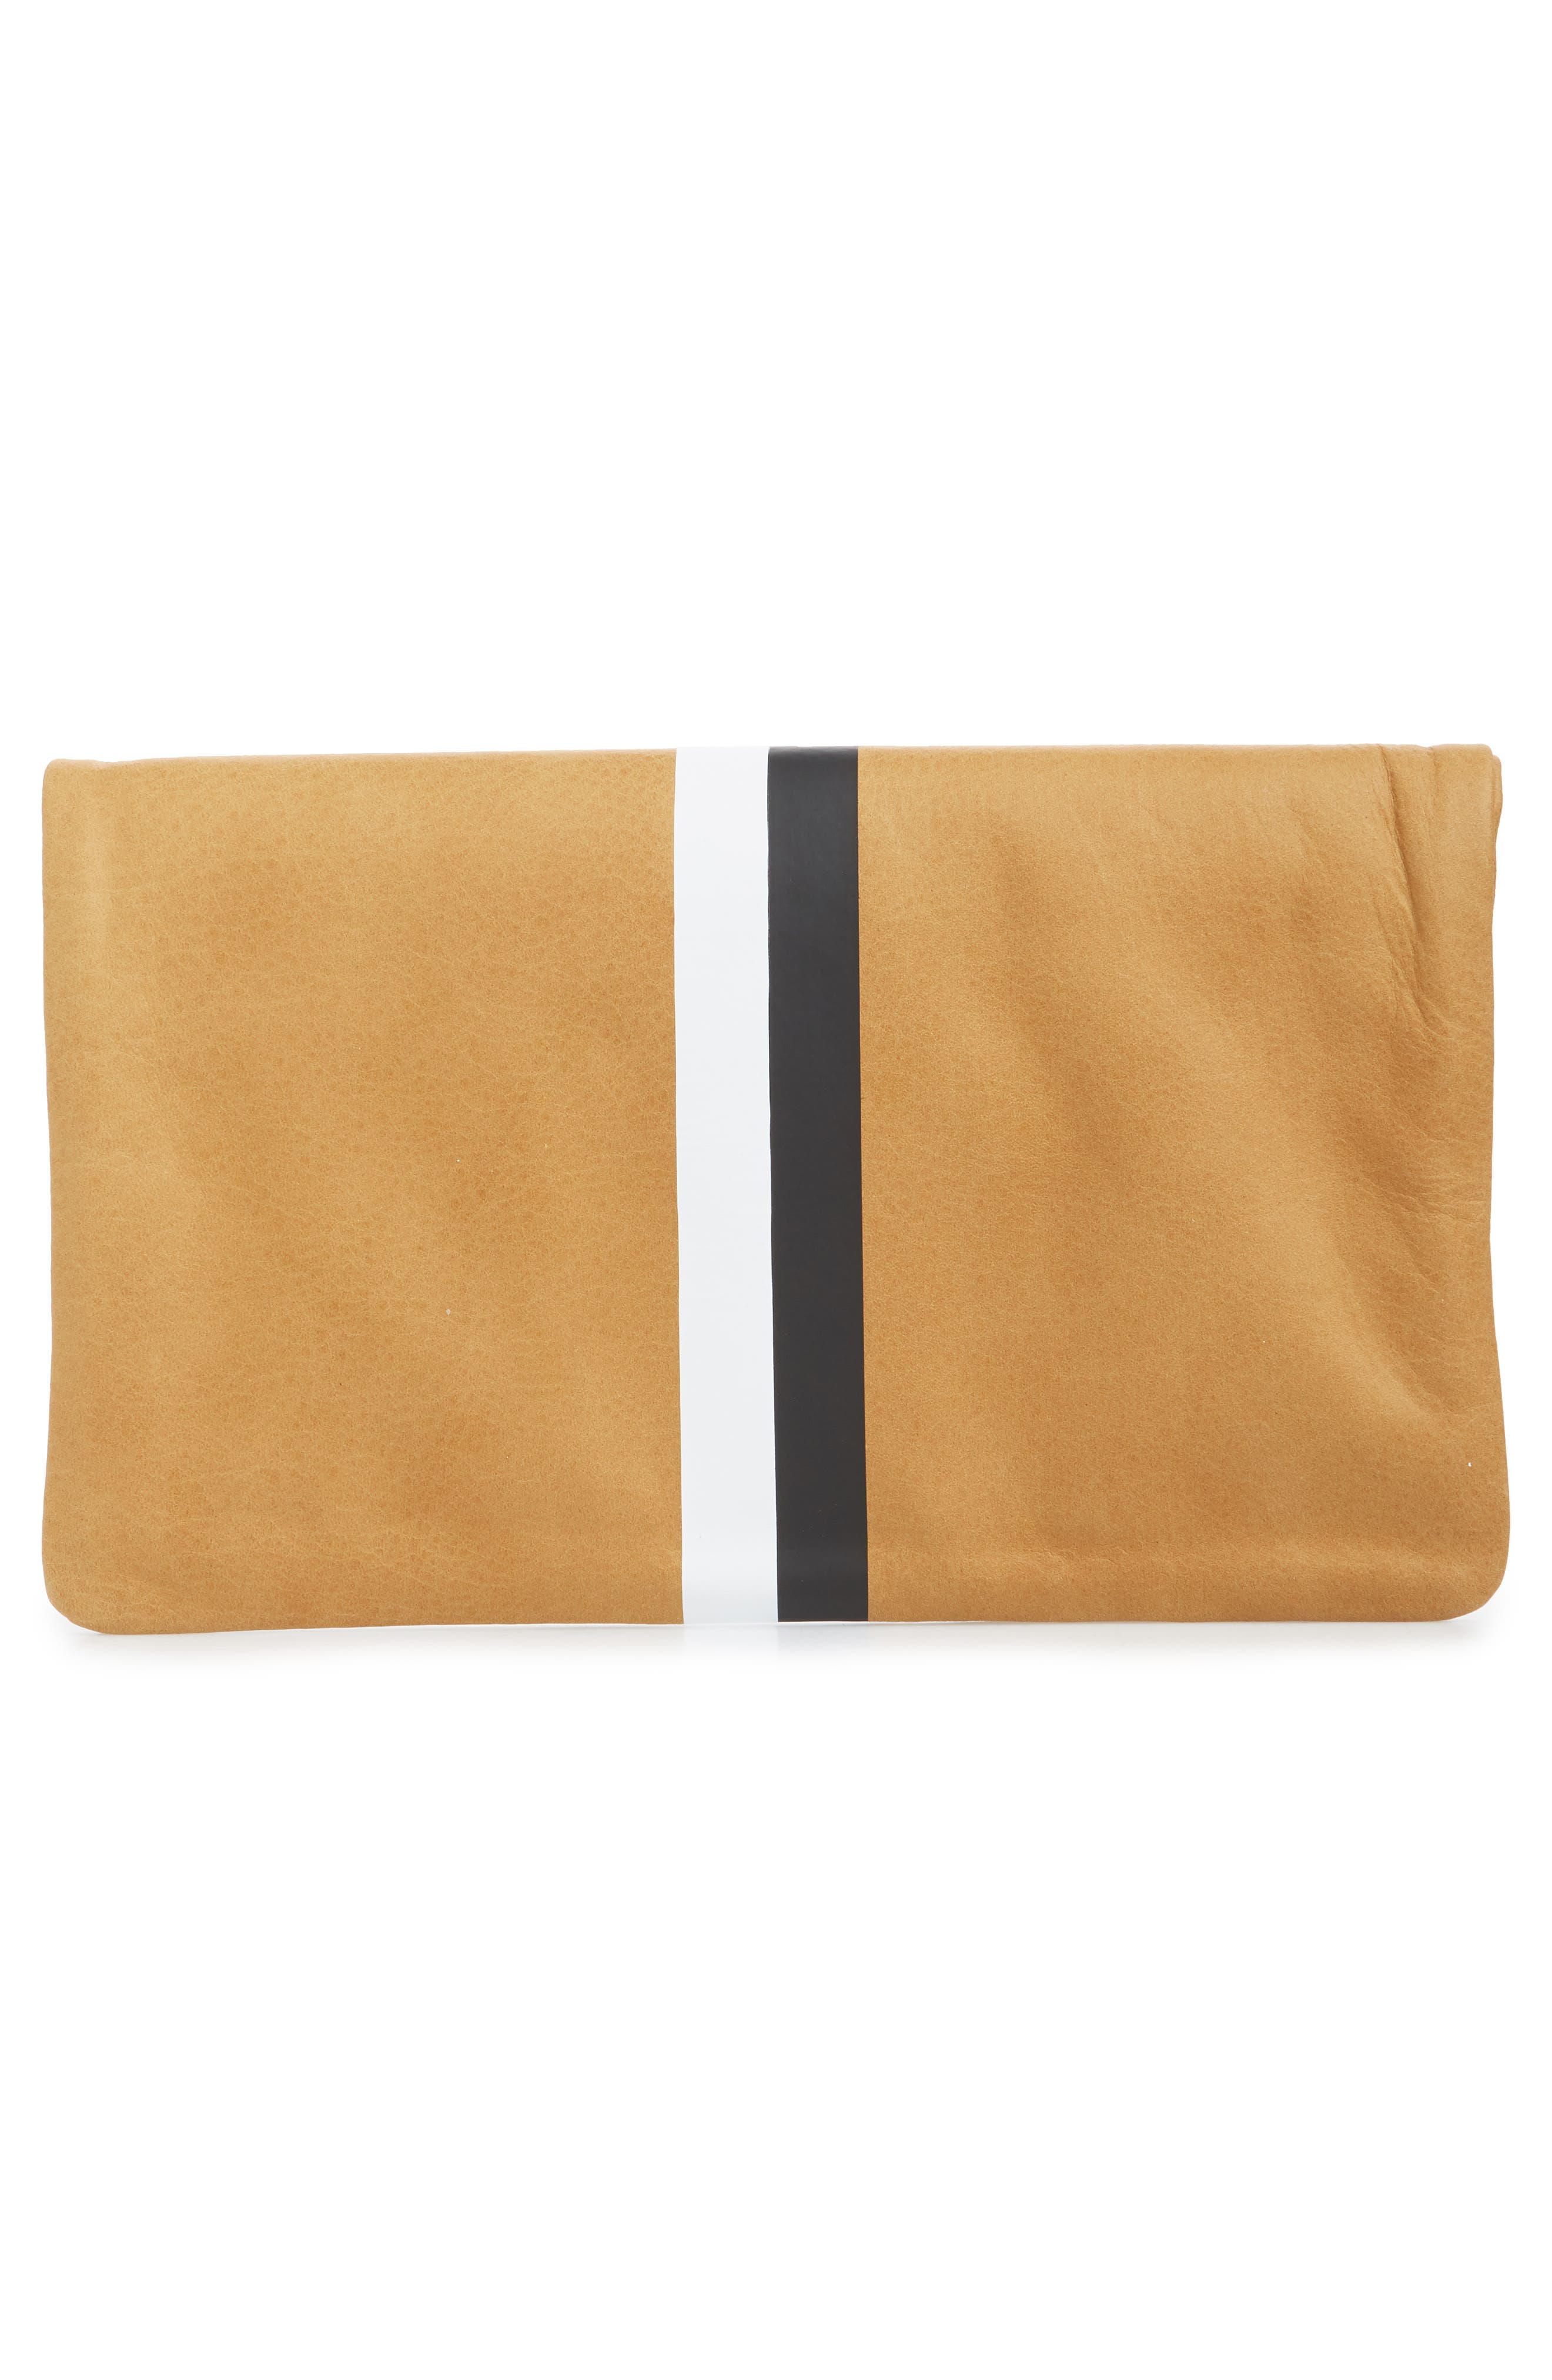 Center Stripe Leather Foldover Clutch,                             Alternate thumbnail 5, color,                             Camel